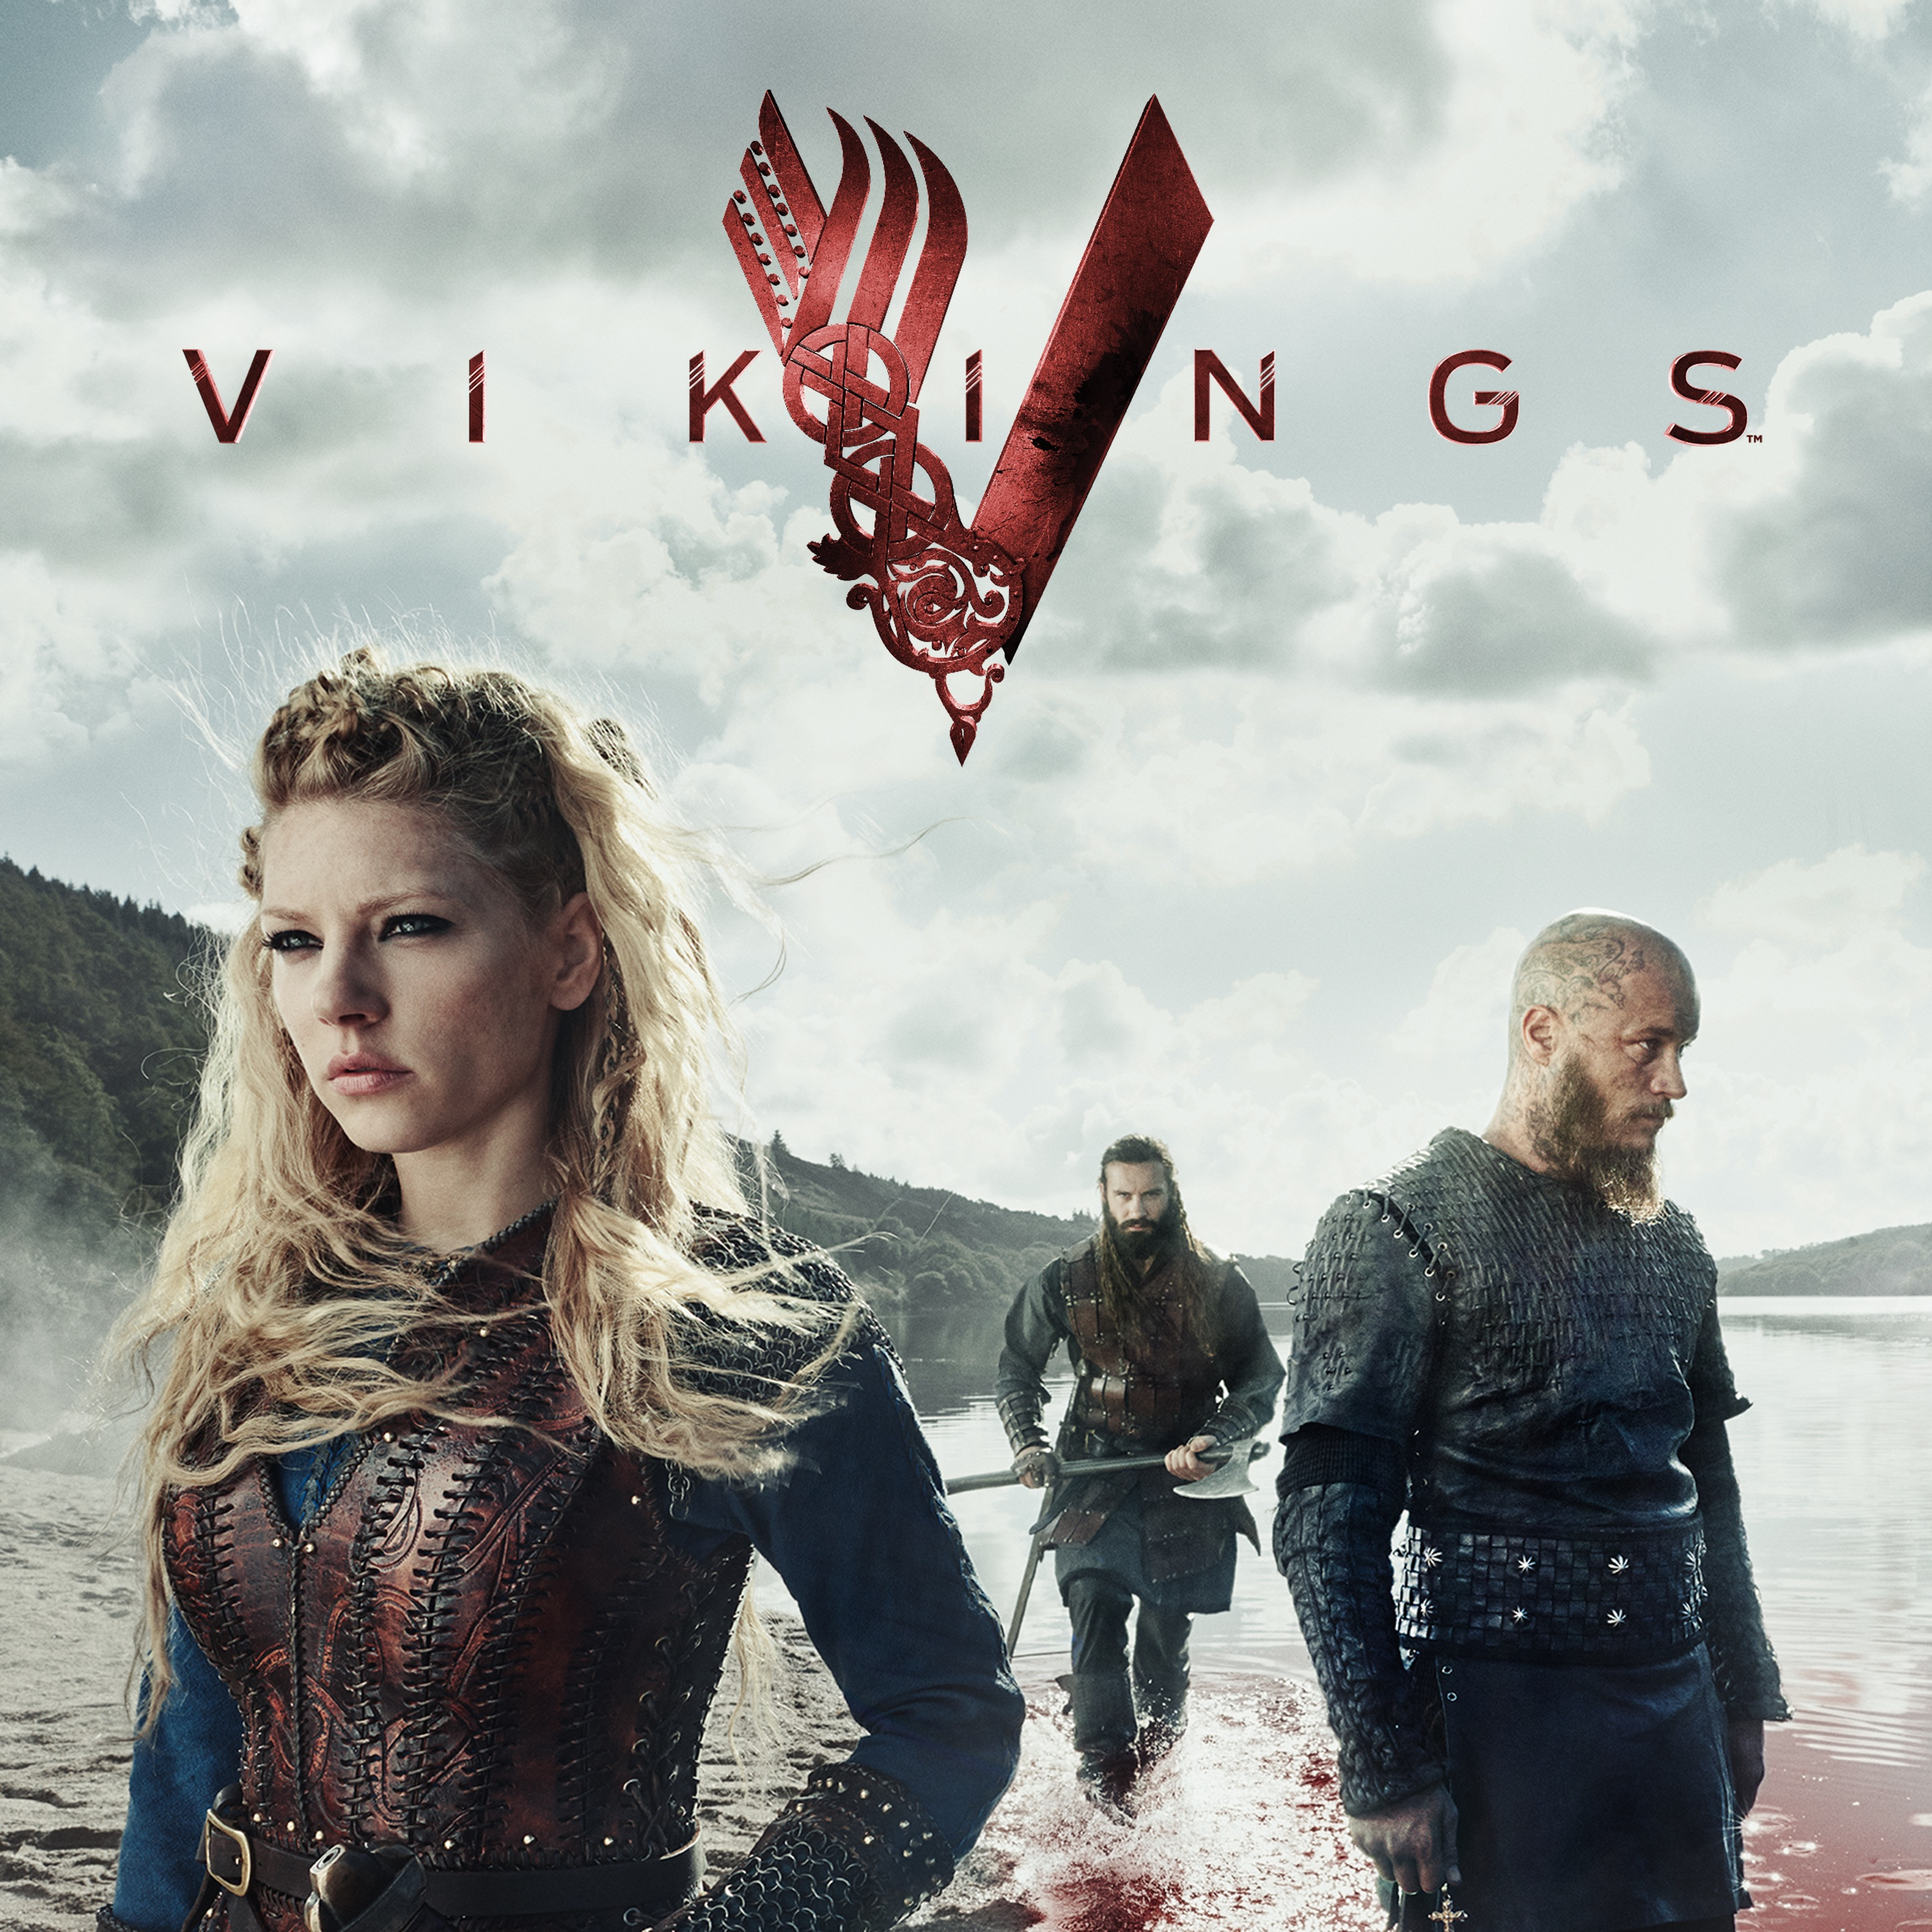 3 staffel vikings